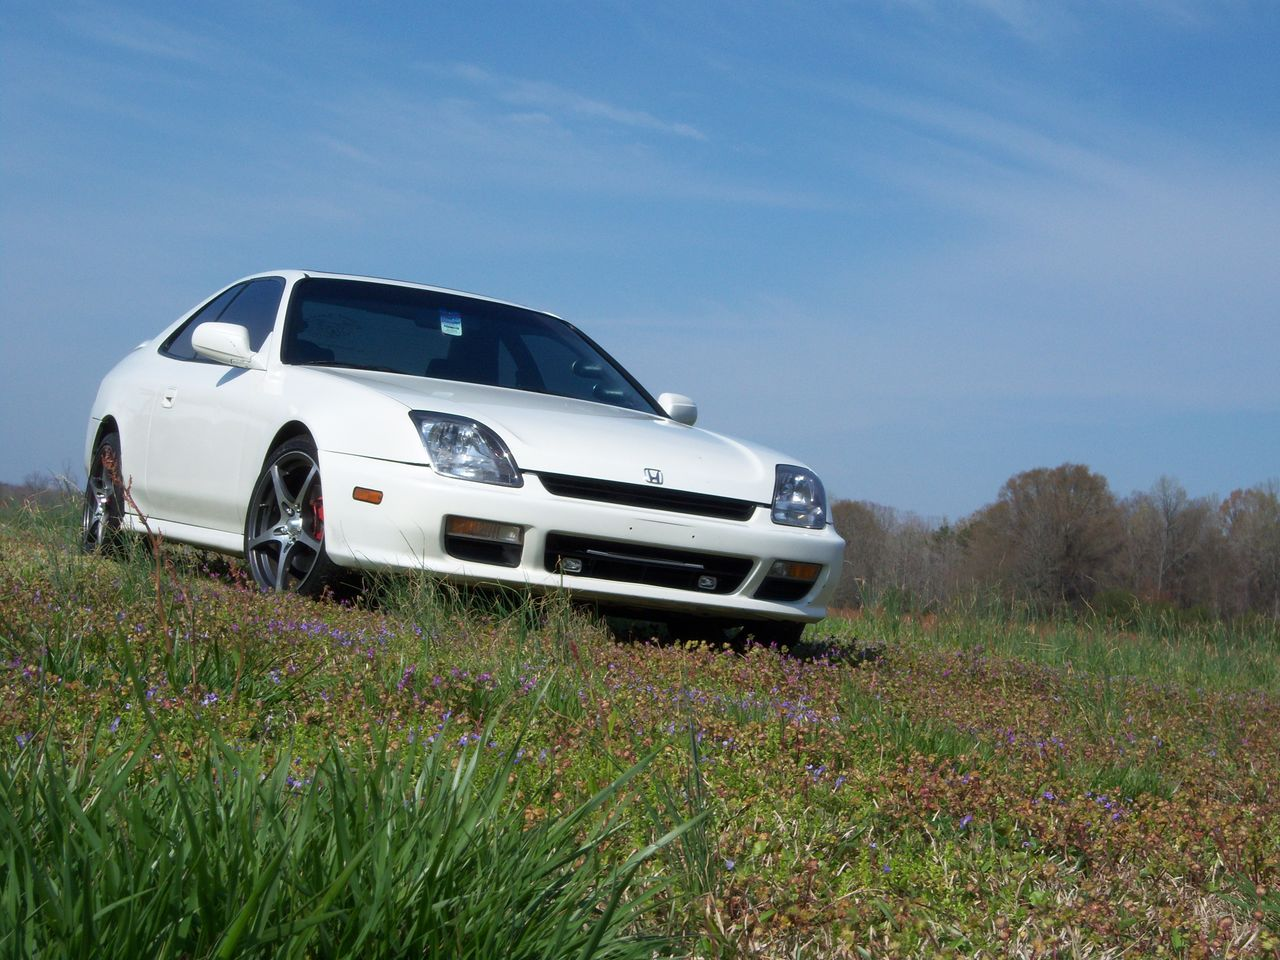 Picture of 2001 Honda Prelude 2 Dr STD Coupe